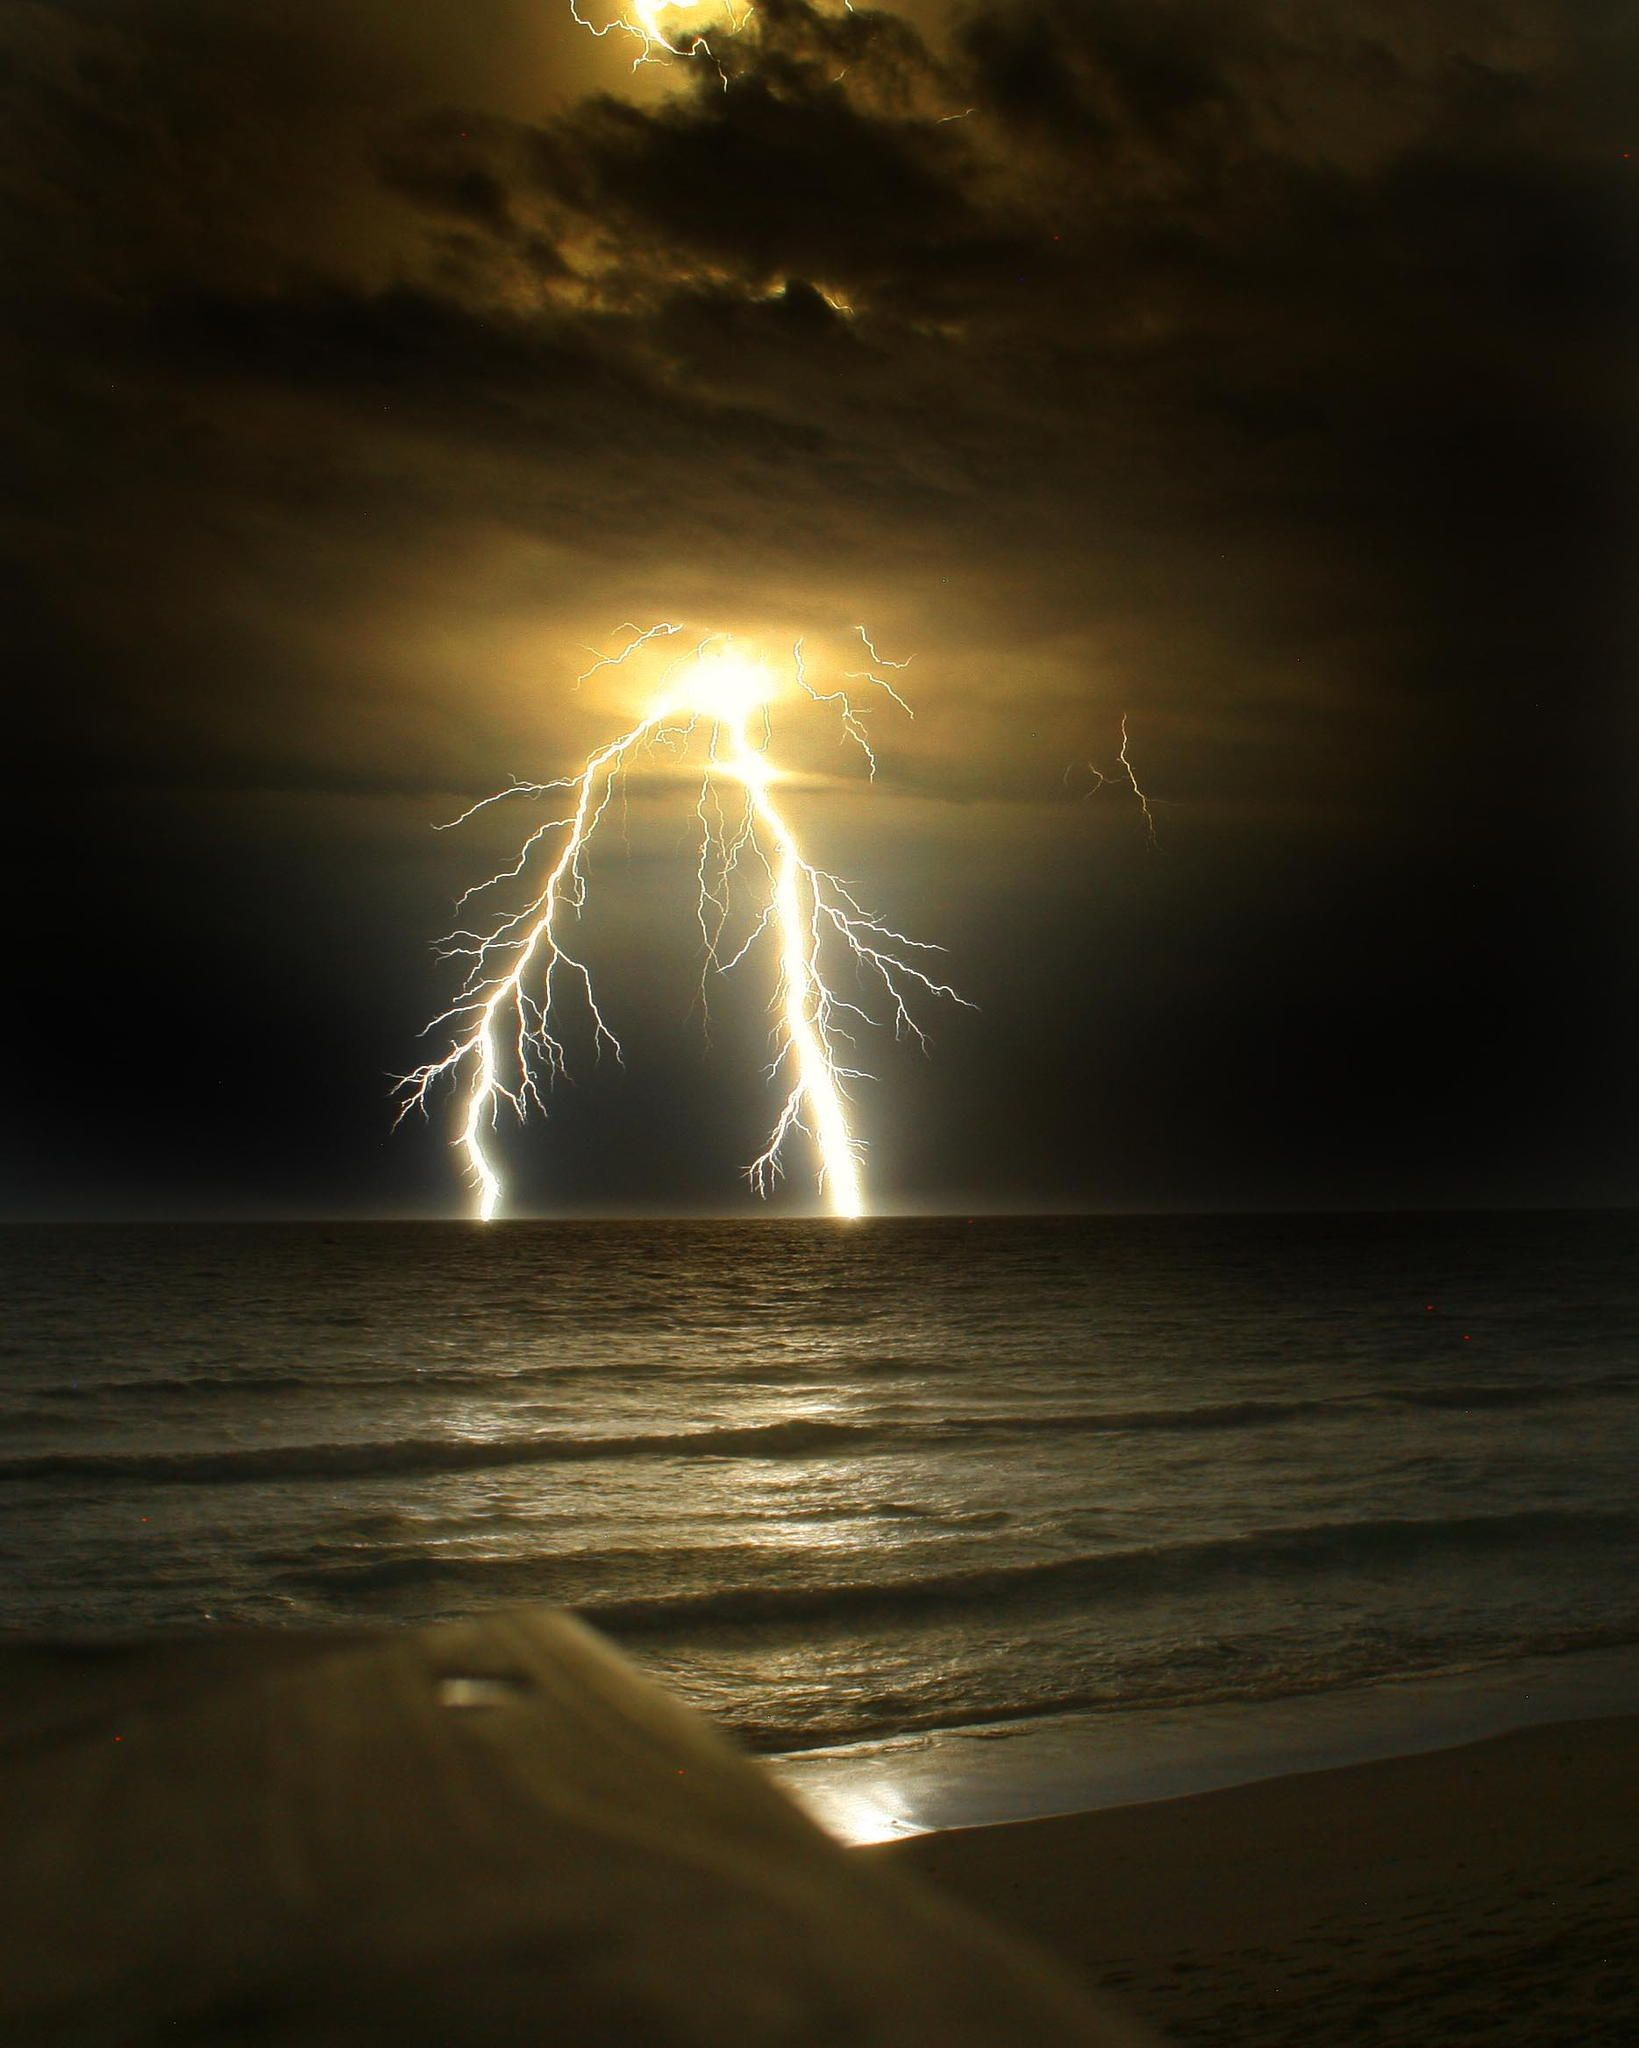 Lightning by Manuel Castillo on 500px | ❧ Weather Pictures ❧ in